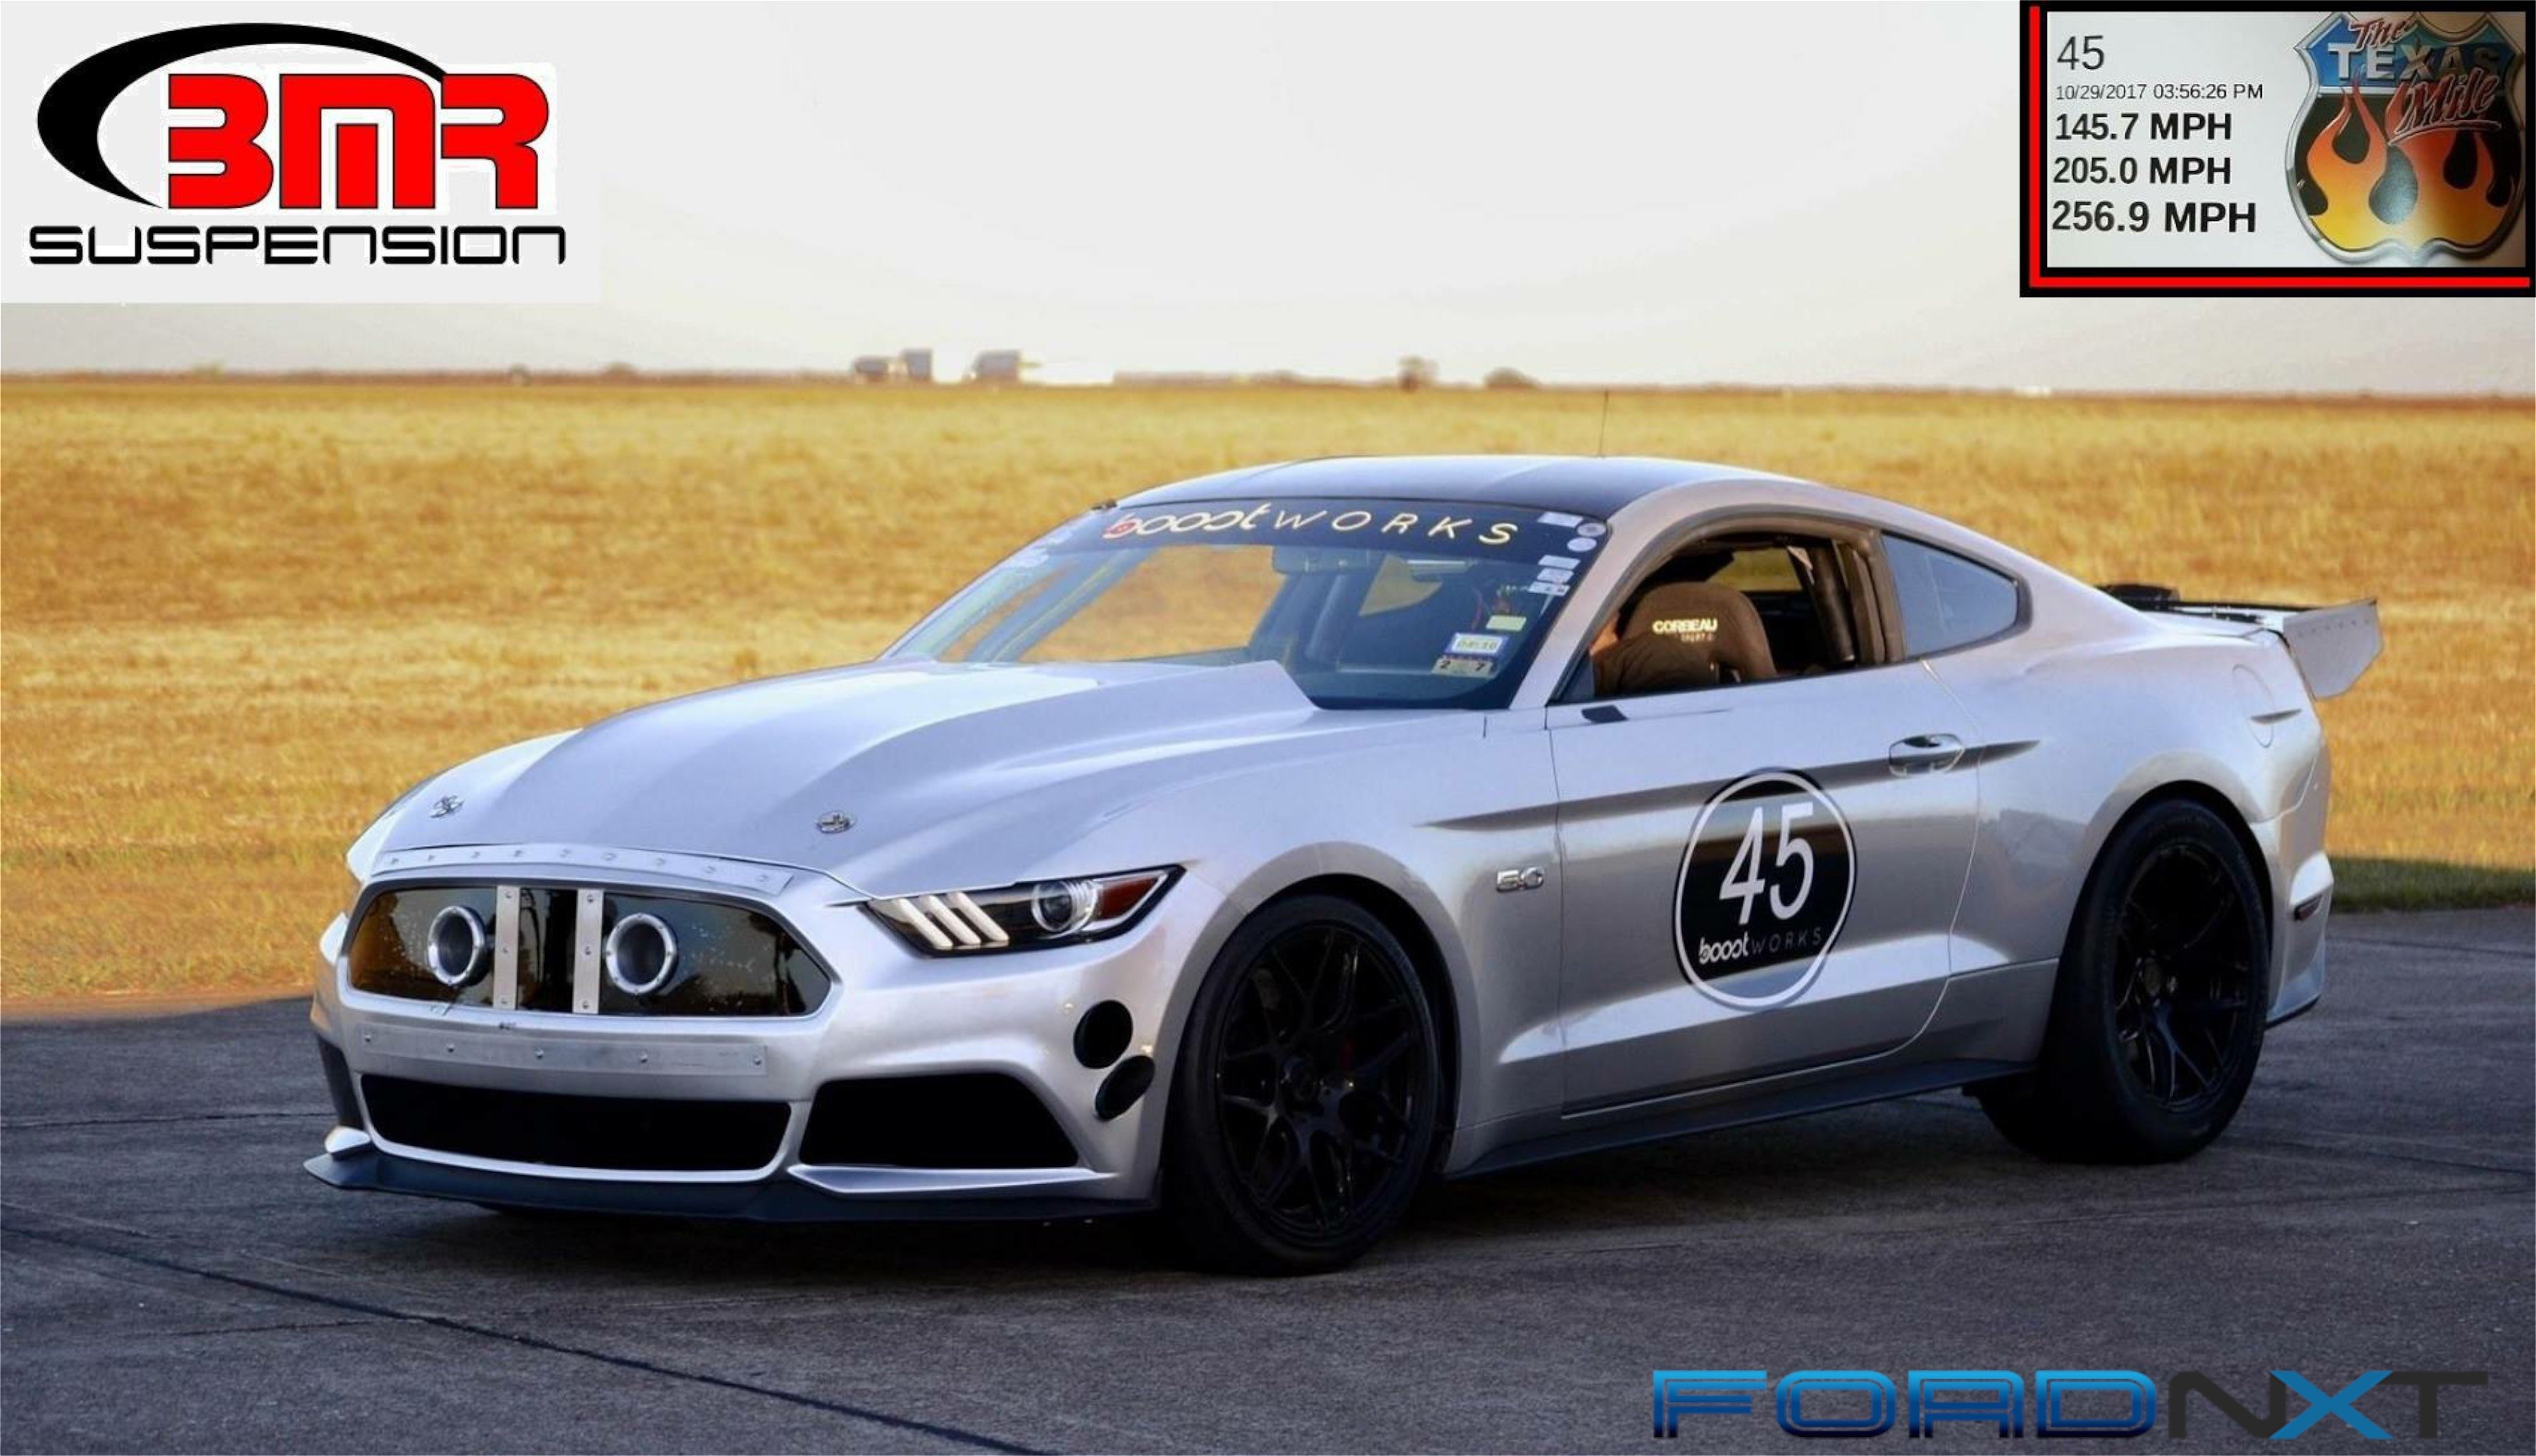 2 400hp 2015 Mustang Gt Is Gunning For 270 Mph